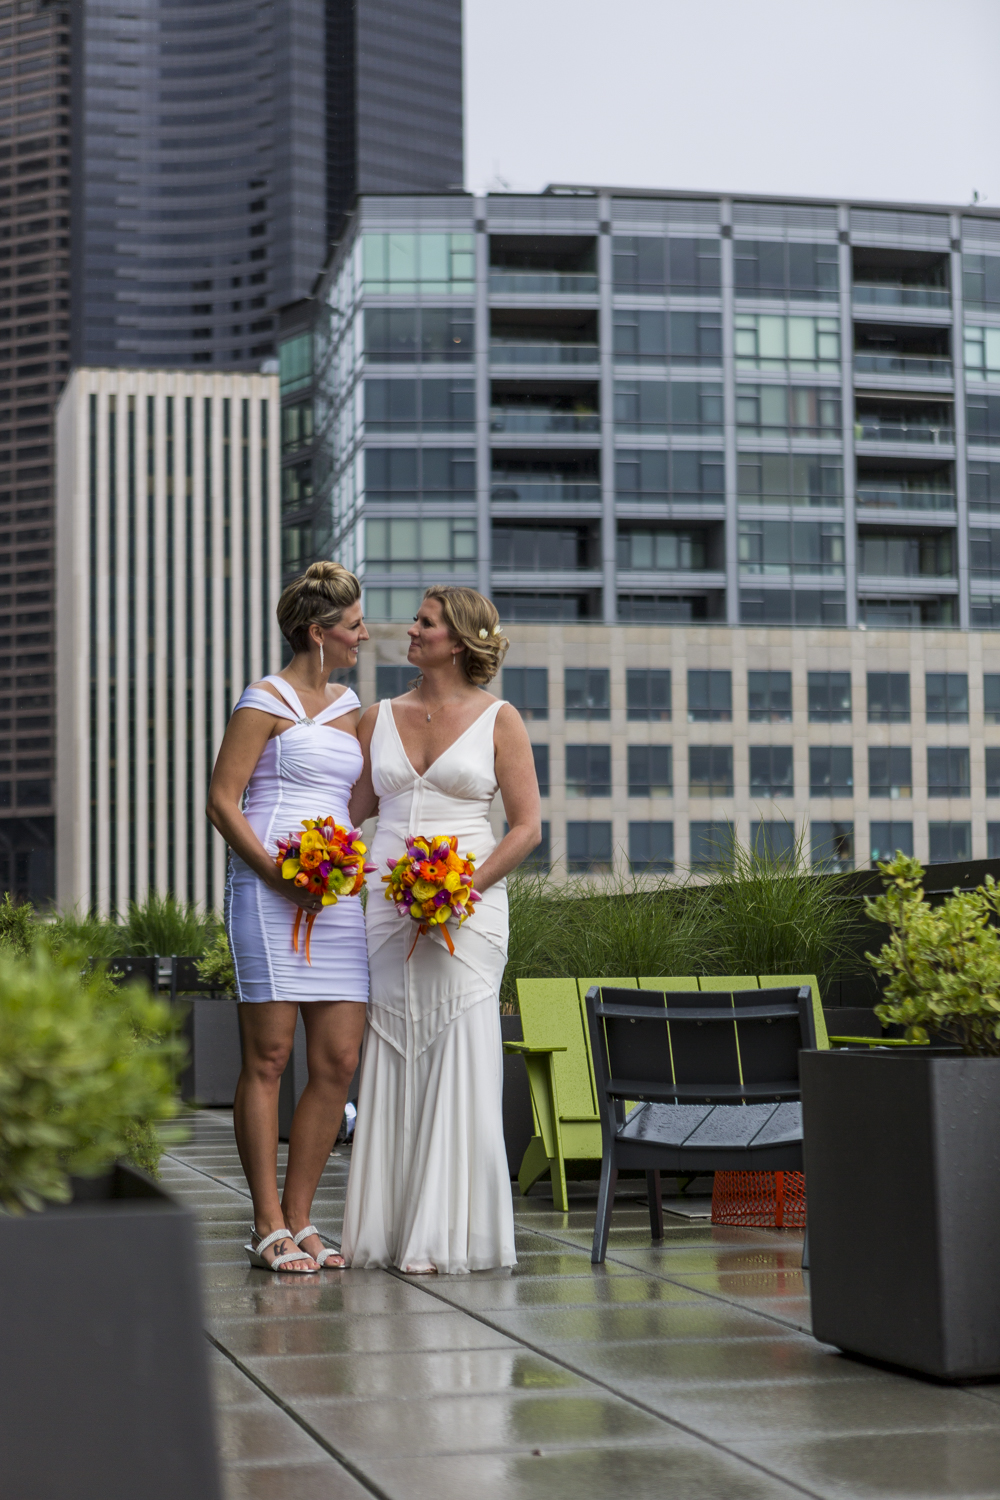 lesbian_seattle_gay_pnw_photographer_wedding_photographer_weddingphotography_modernweddings_beautifulbride_seattlebride_bellevuebride_pnwbride_washington_gayweddings-18.jpg